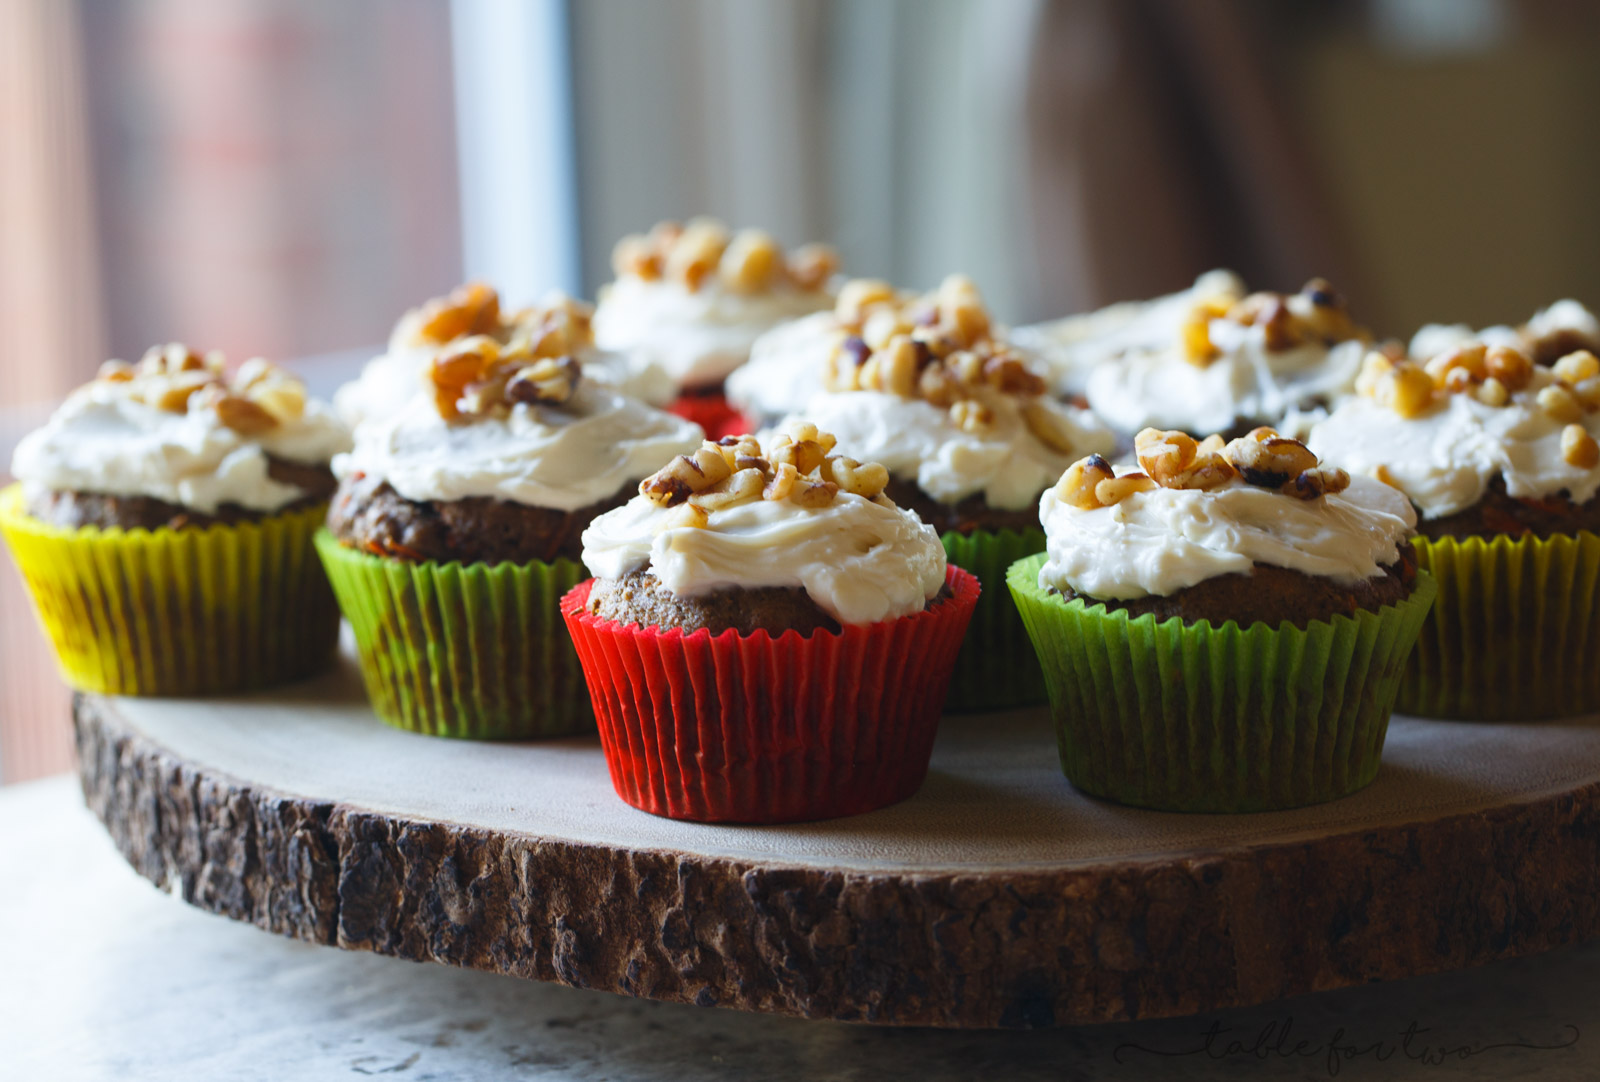 Tender and moist carrot cake muffins that are topped generously with a cream cheese frosting. The perfect muffins when you don't want to make an entire carrot cake! An easy and pretty healthy treat for any occasion or for Easter celebrations!